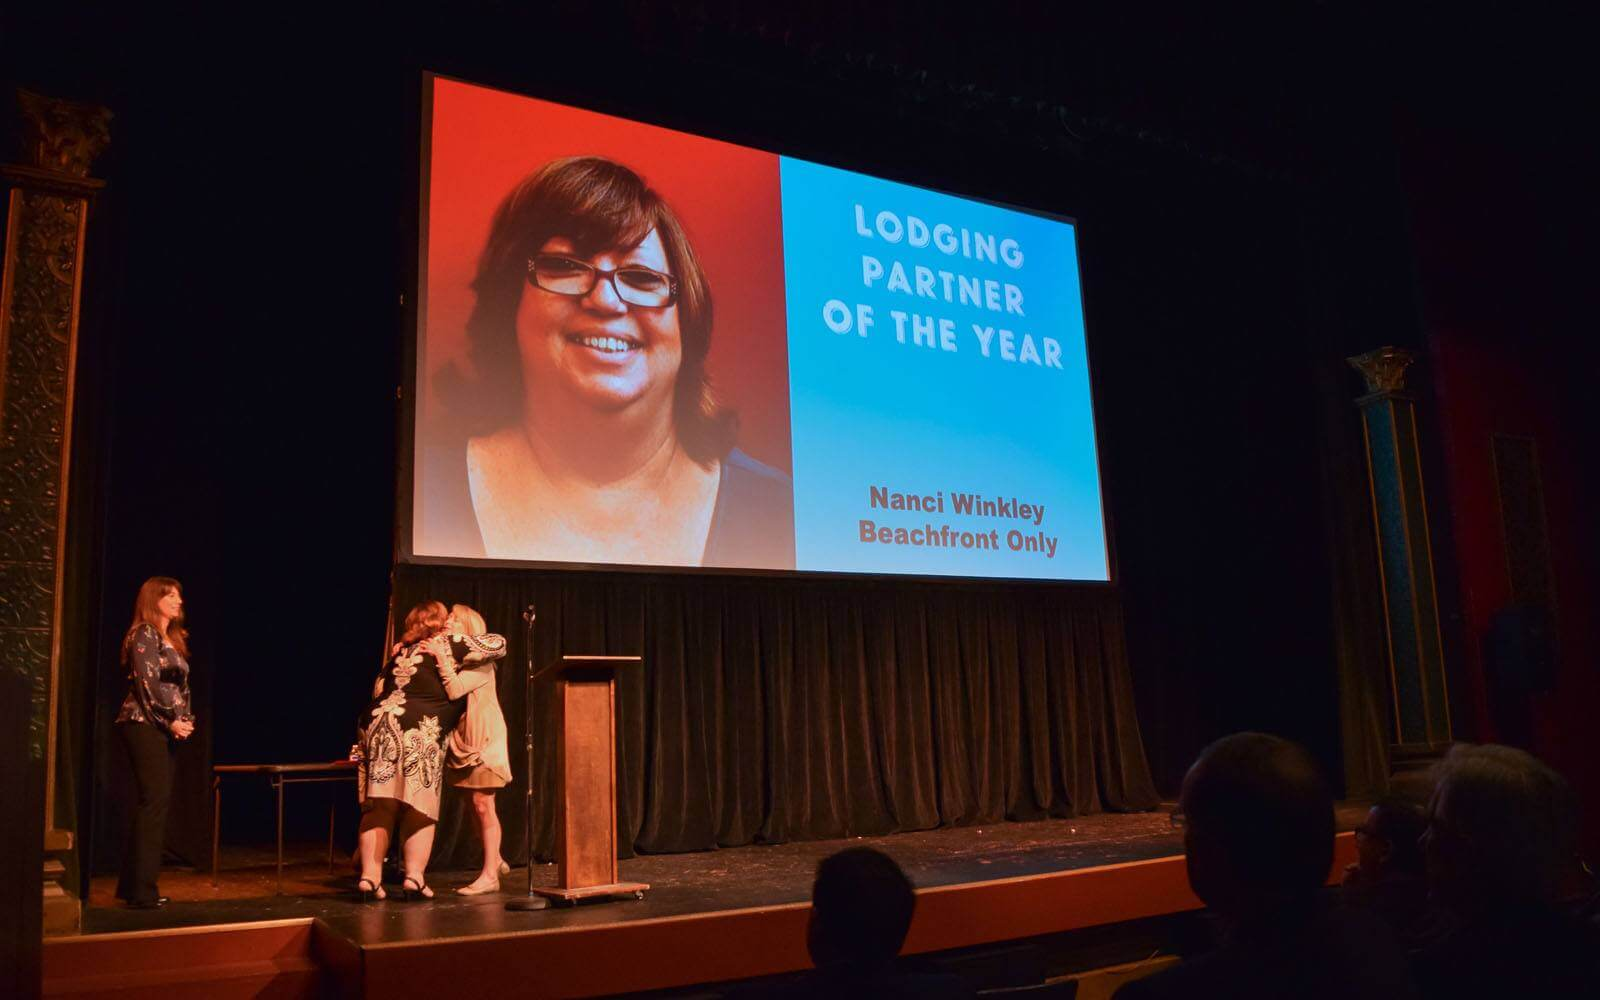 2017 Lodging Partner of the Year- Nanci Winkley